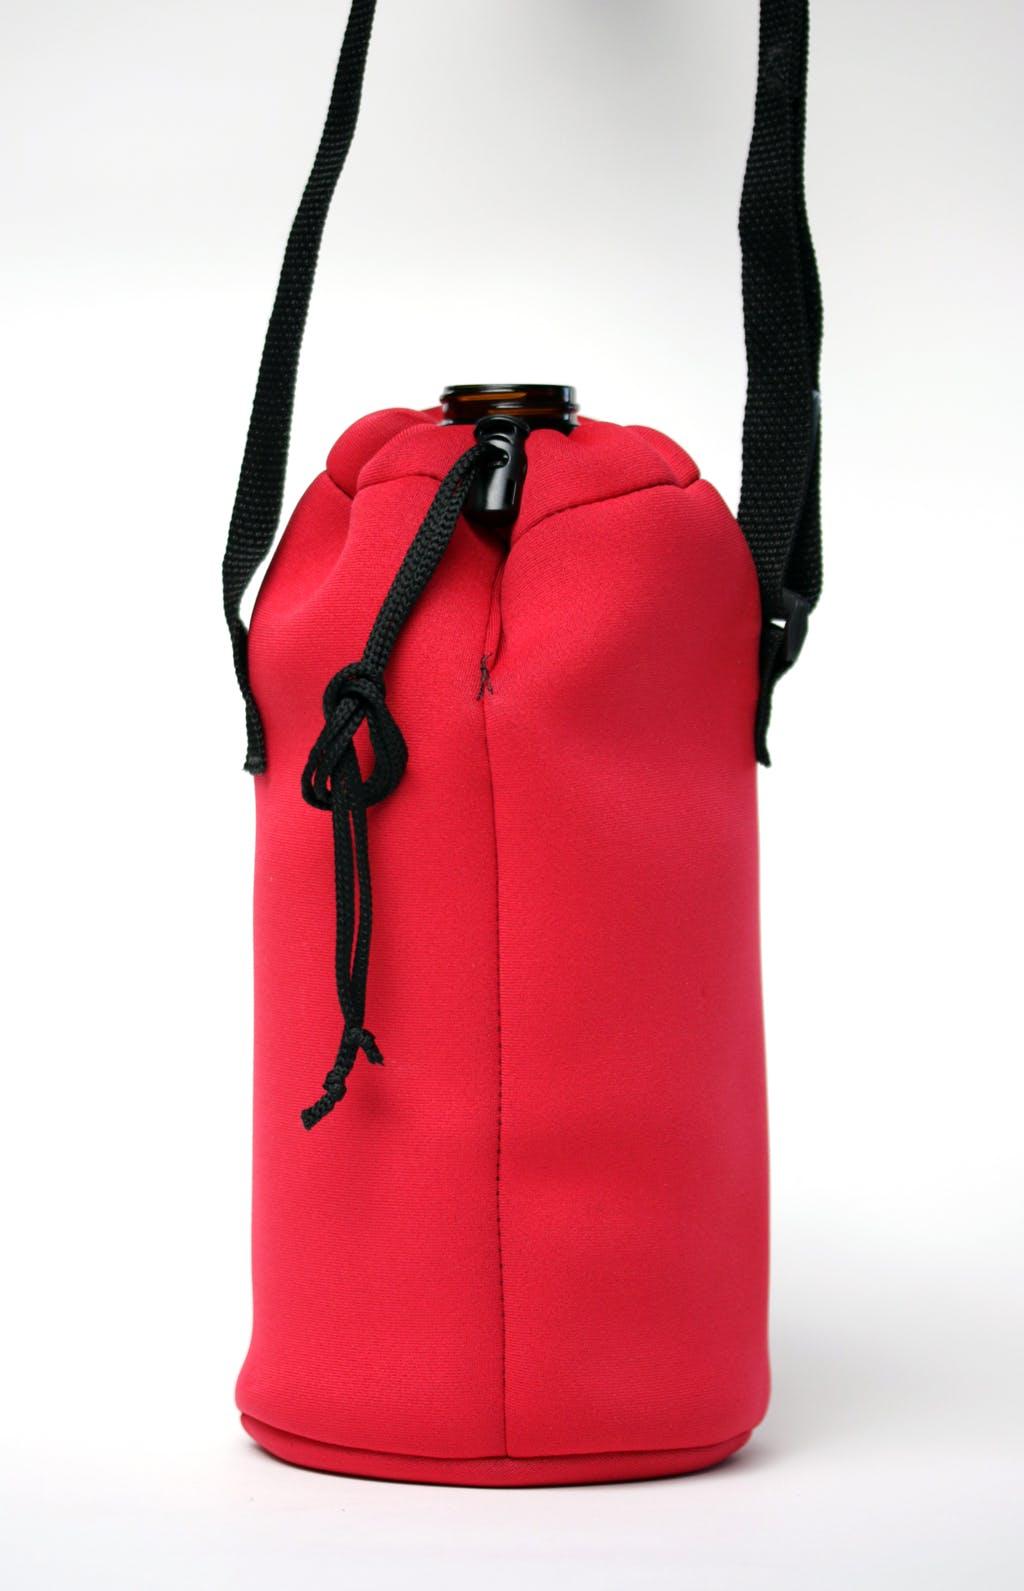 Neoprene growler sling - drawstring Bottle carrier sold by Brewery Outfitters